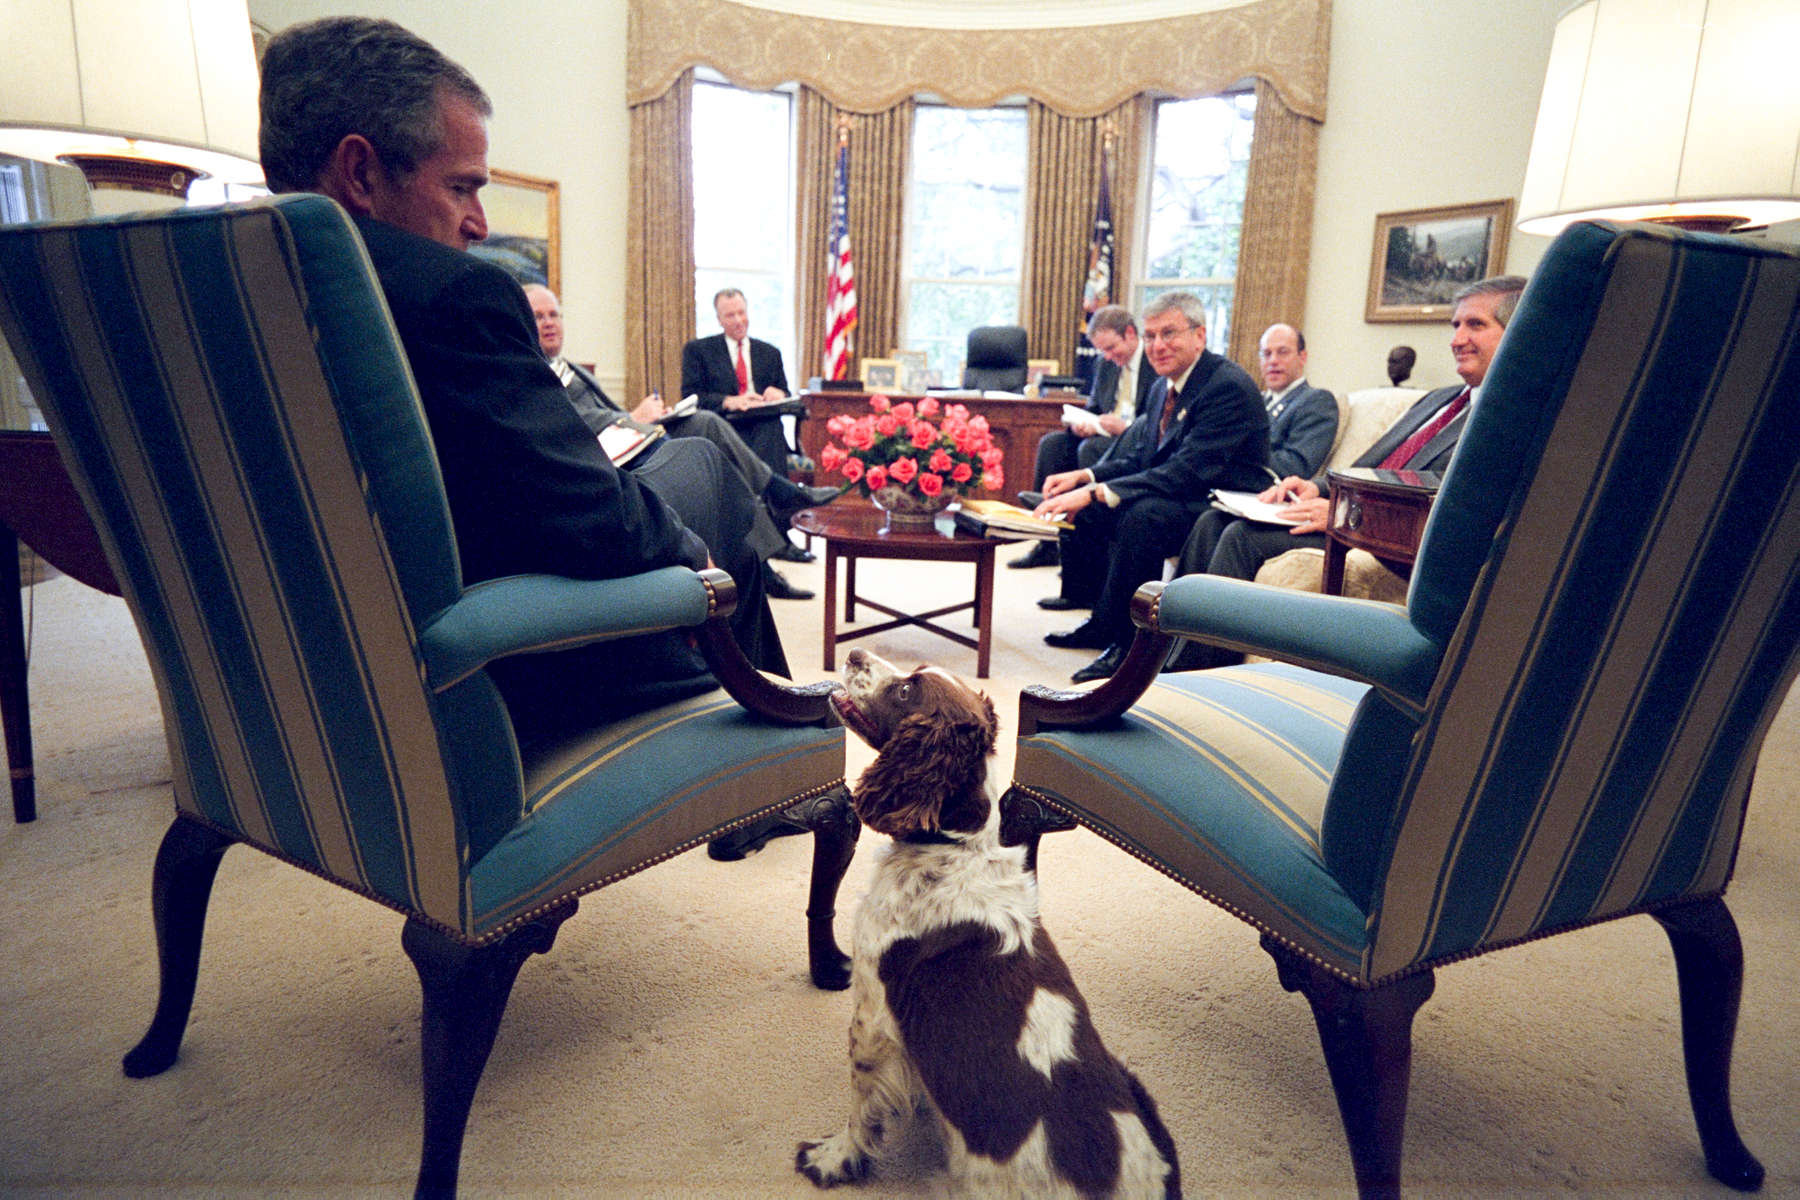 PRESIDENT BUSH MEETS WITH NICK CALIO, MITCH DANIELS, KARL ROVE, LEWIS LIBBY, DAN BARTLETT, JOSH BOLTEN AND ANDY CARD. THE PRESIDENT PETS SPOT DURING THE MEETING. ARI FLEISCHER TALKS WITH CALIO AND DANIELS IN THE OUTER OVAL OFFICE PRIOR TO THE MEETING. CALIO TALKS ALONE WITH CARD.Location: OVAL OFFICE